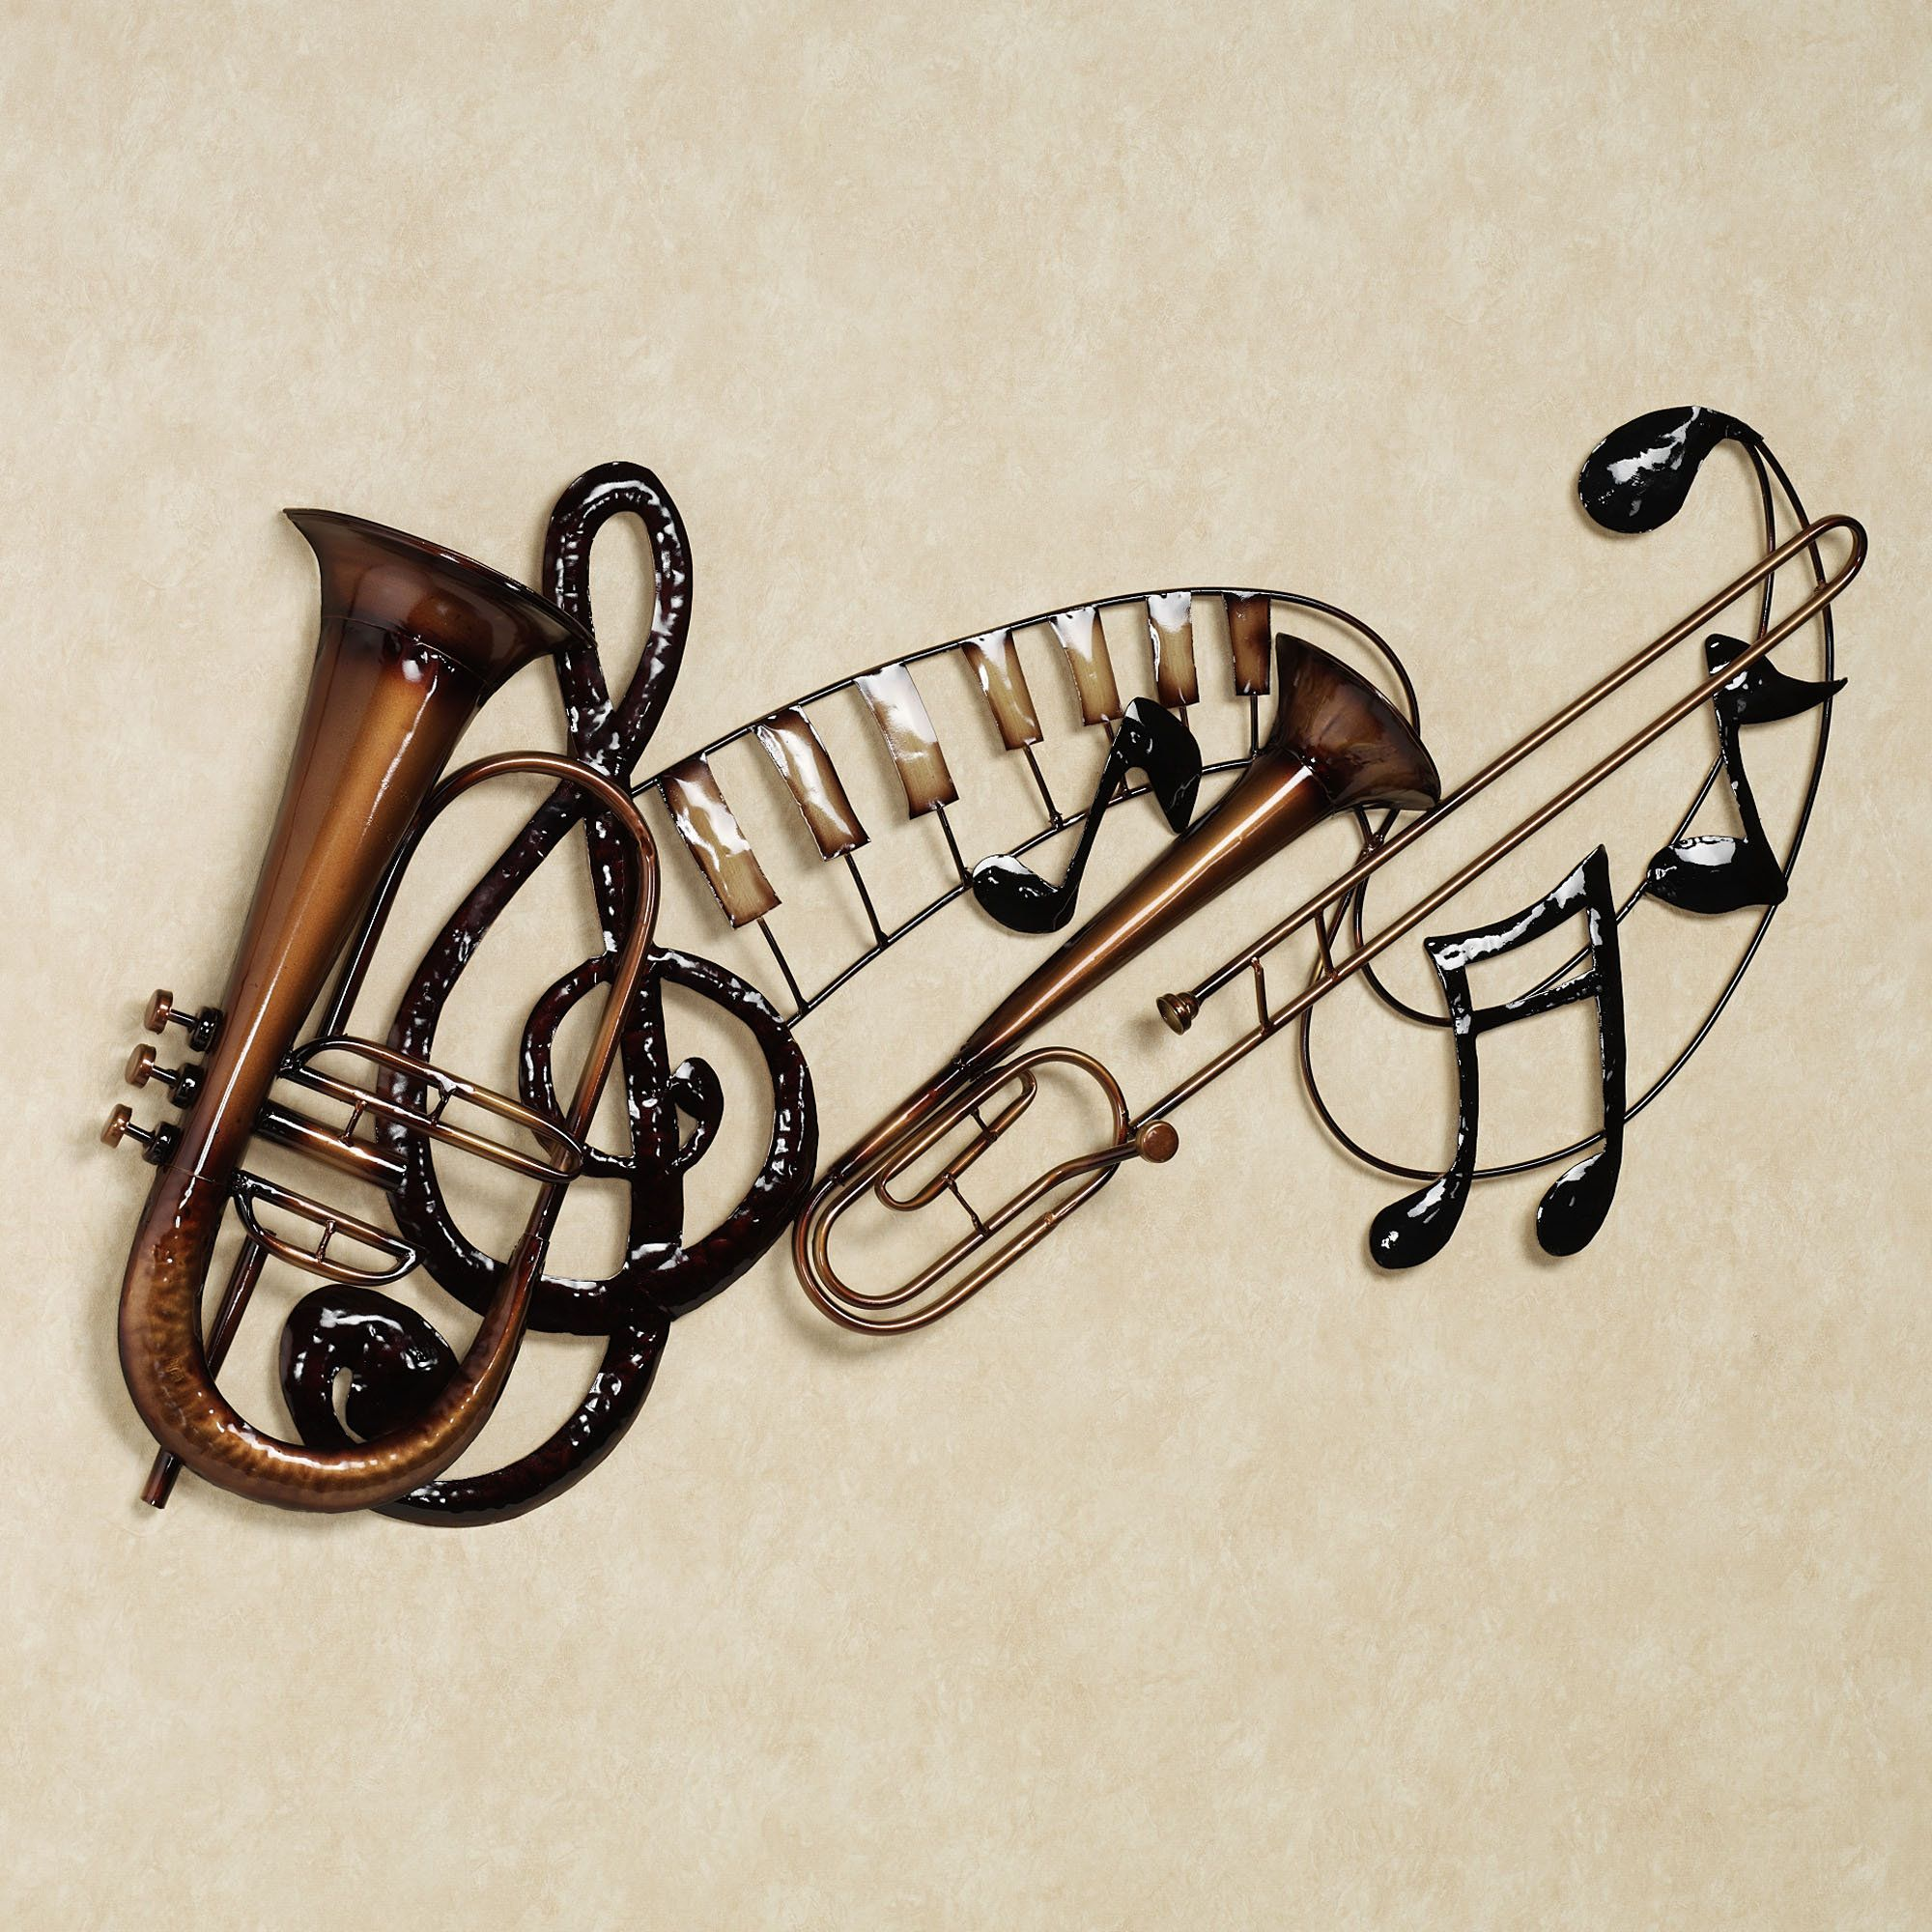 Artistic Metal Wall Art Decor Music Heart Notes Musical Clef